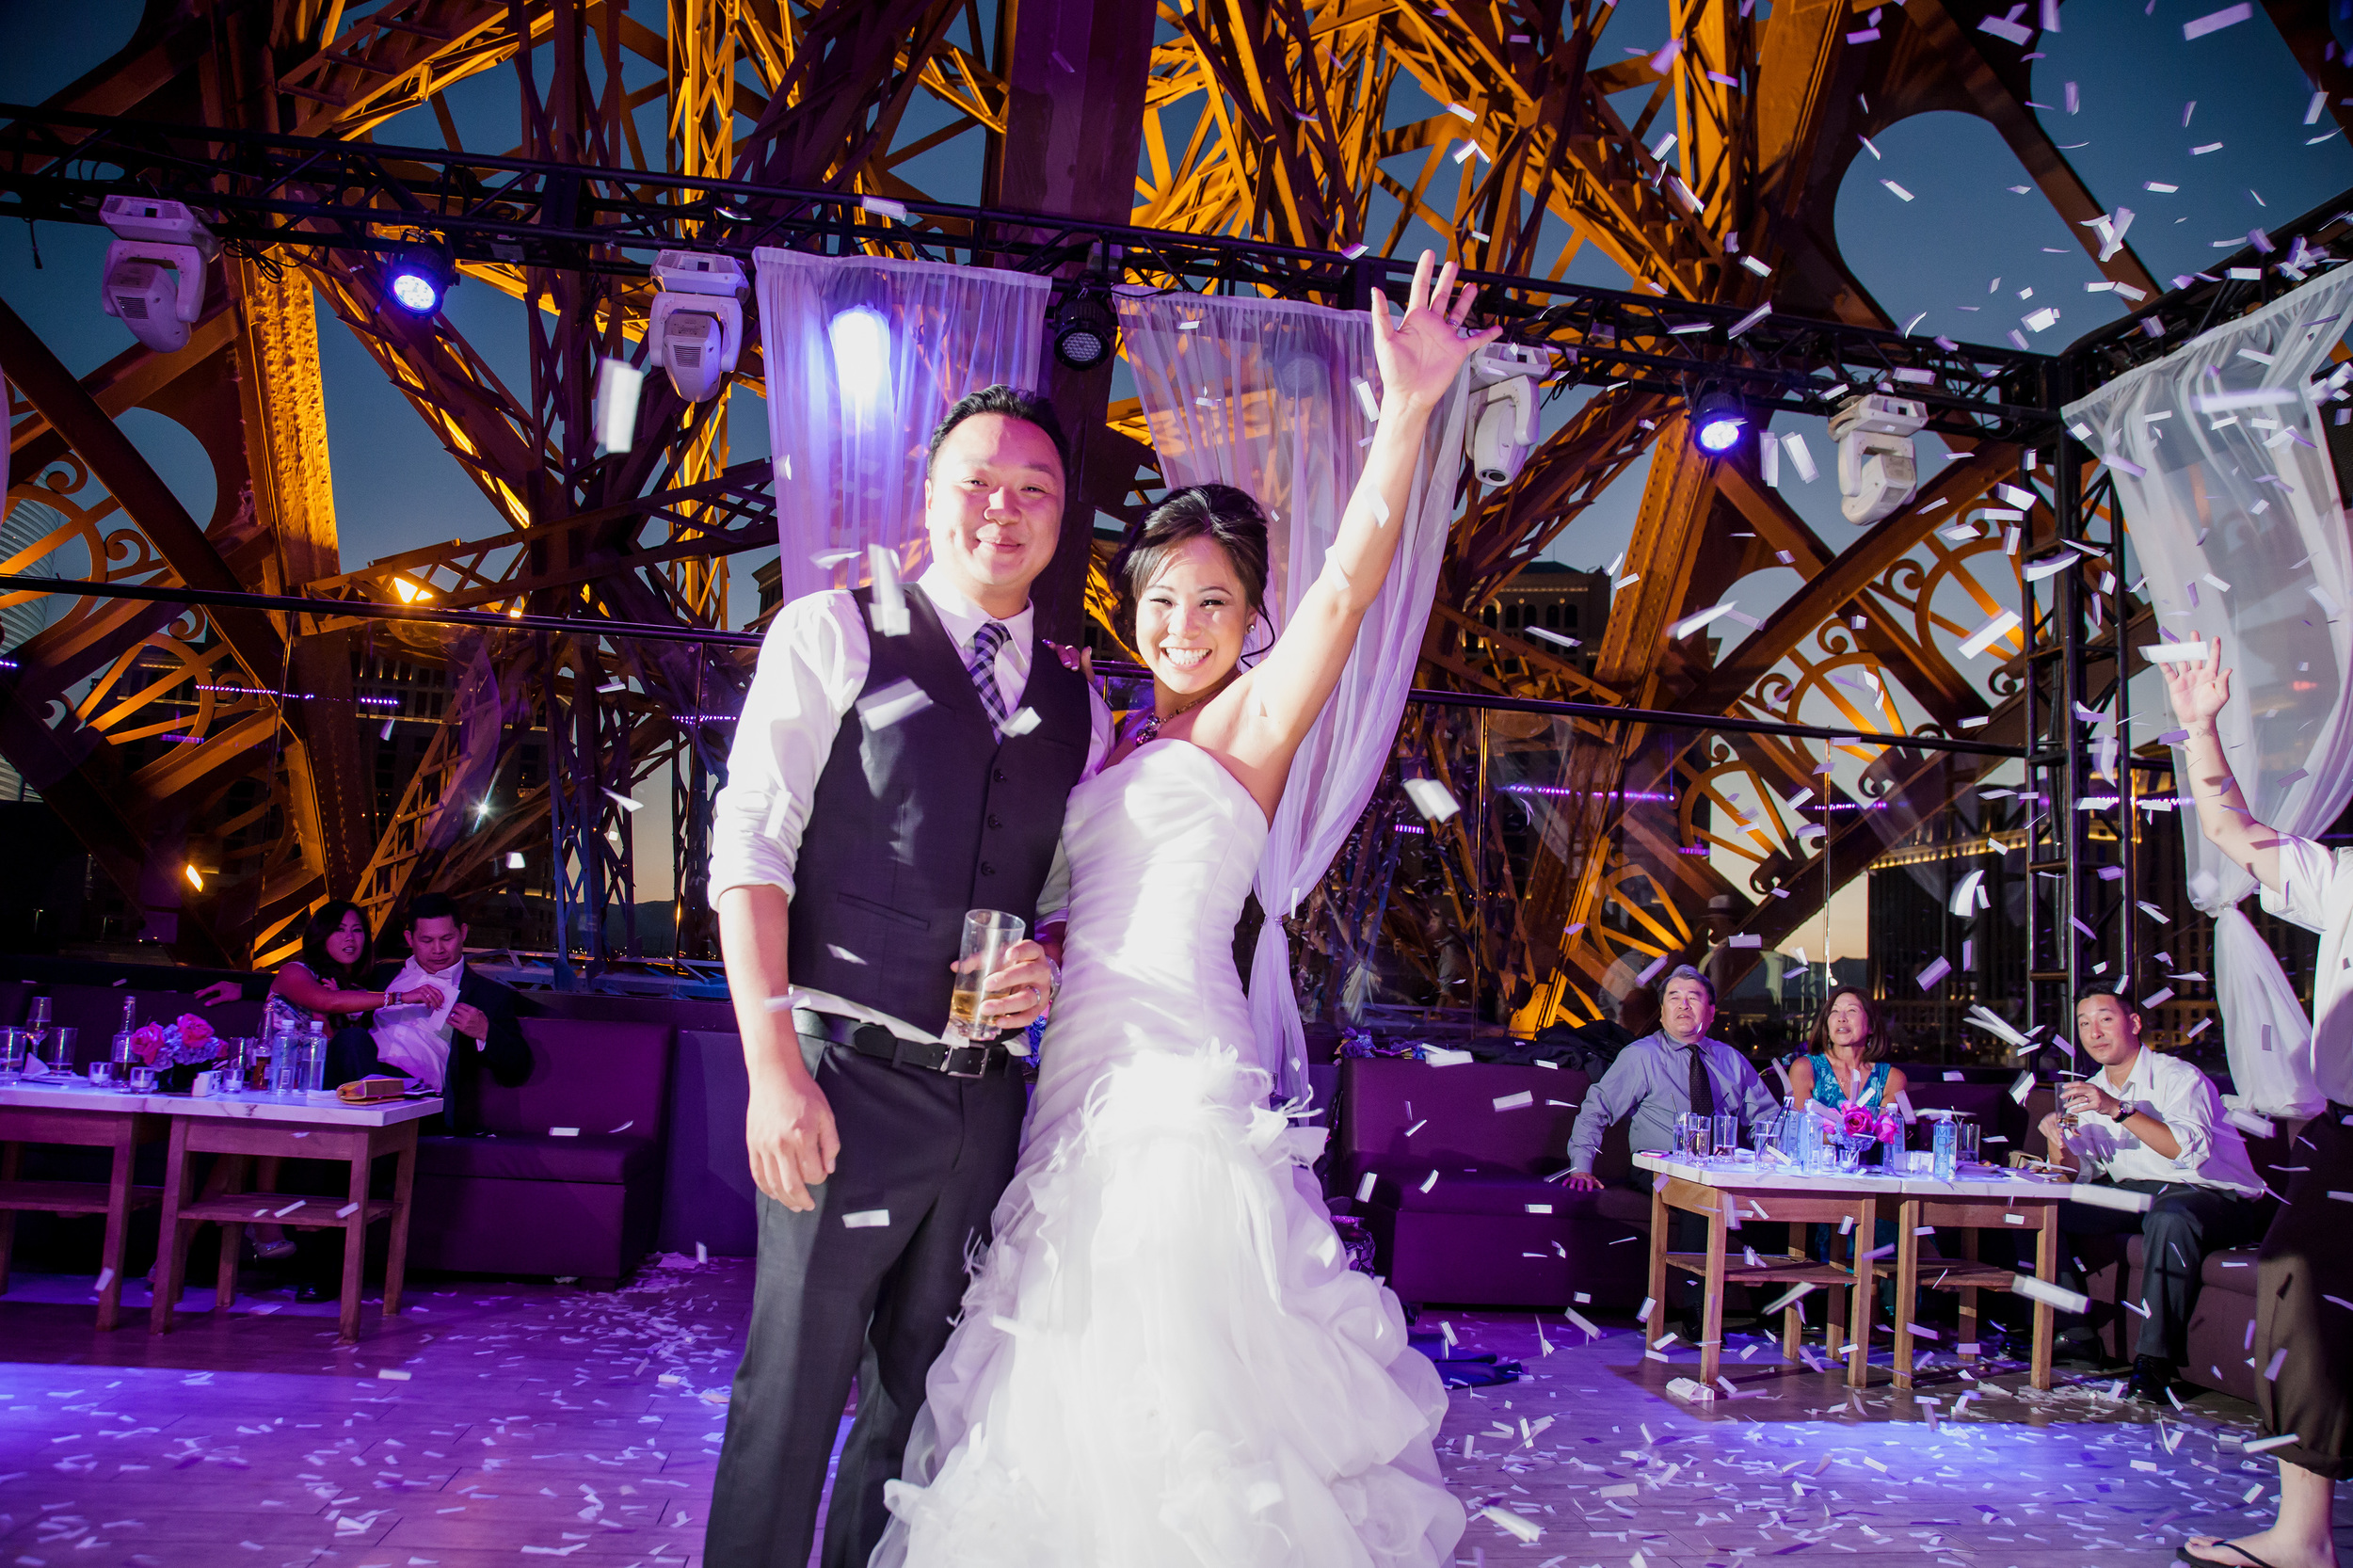 What a party!  Alice & Jimmy celebrated their marriage with a great big wedding party at Chateau Las Vegas.  Photo by  Adam Frazier .